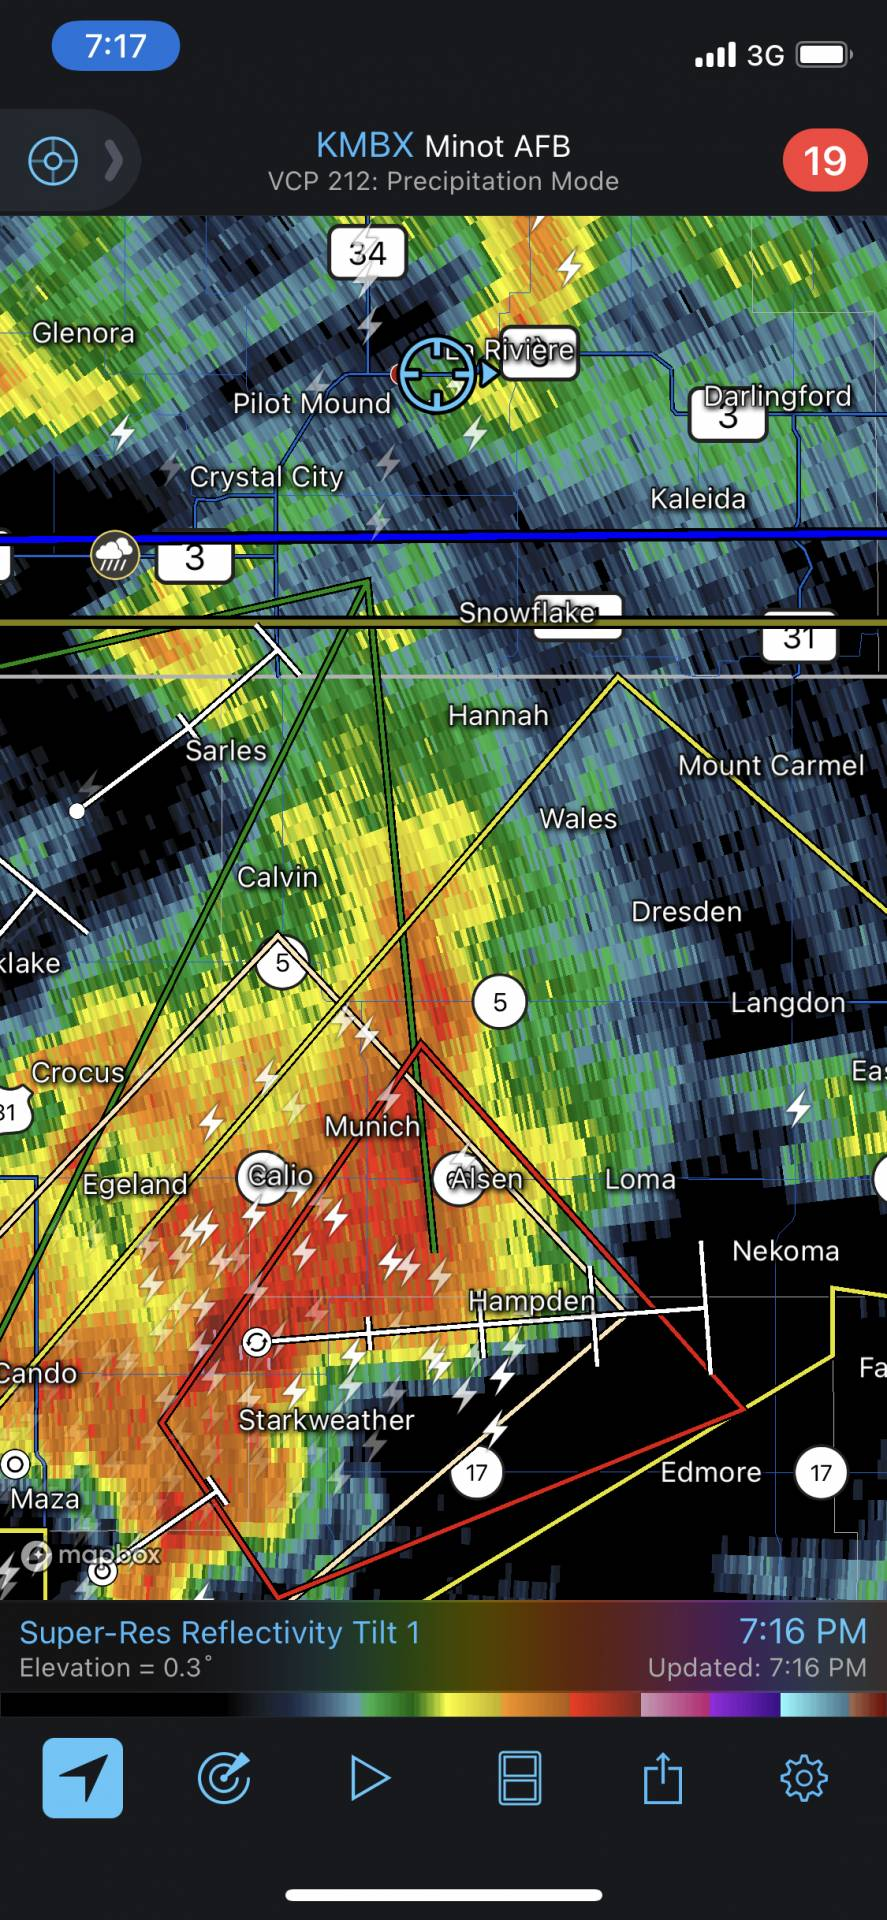 Our storm just went tornado warned. Let's hope it makes the border!